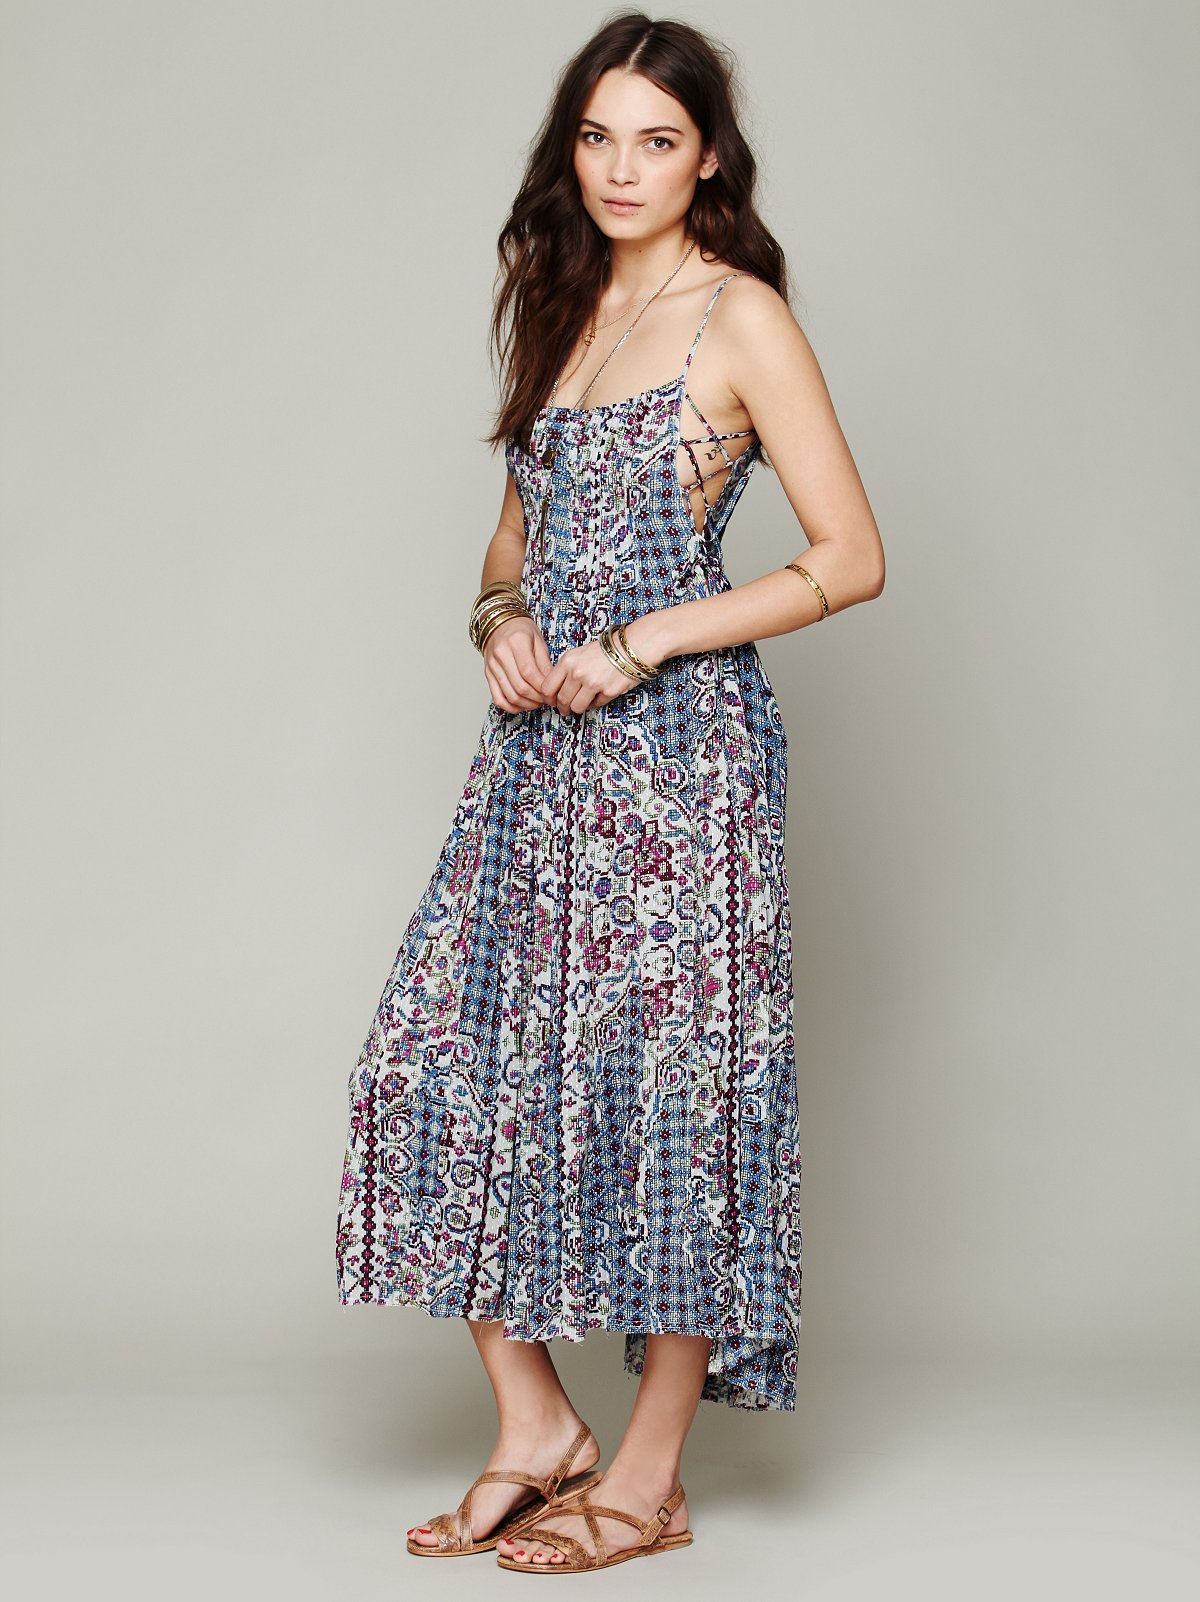 FP ONE Geo Gypsy Maxi Dress at Free People Clothing Boutique